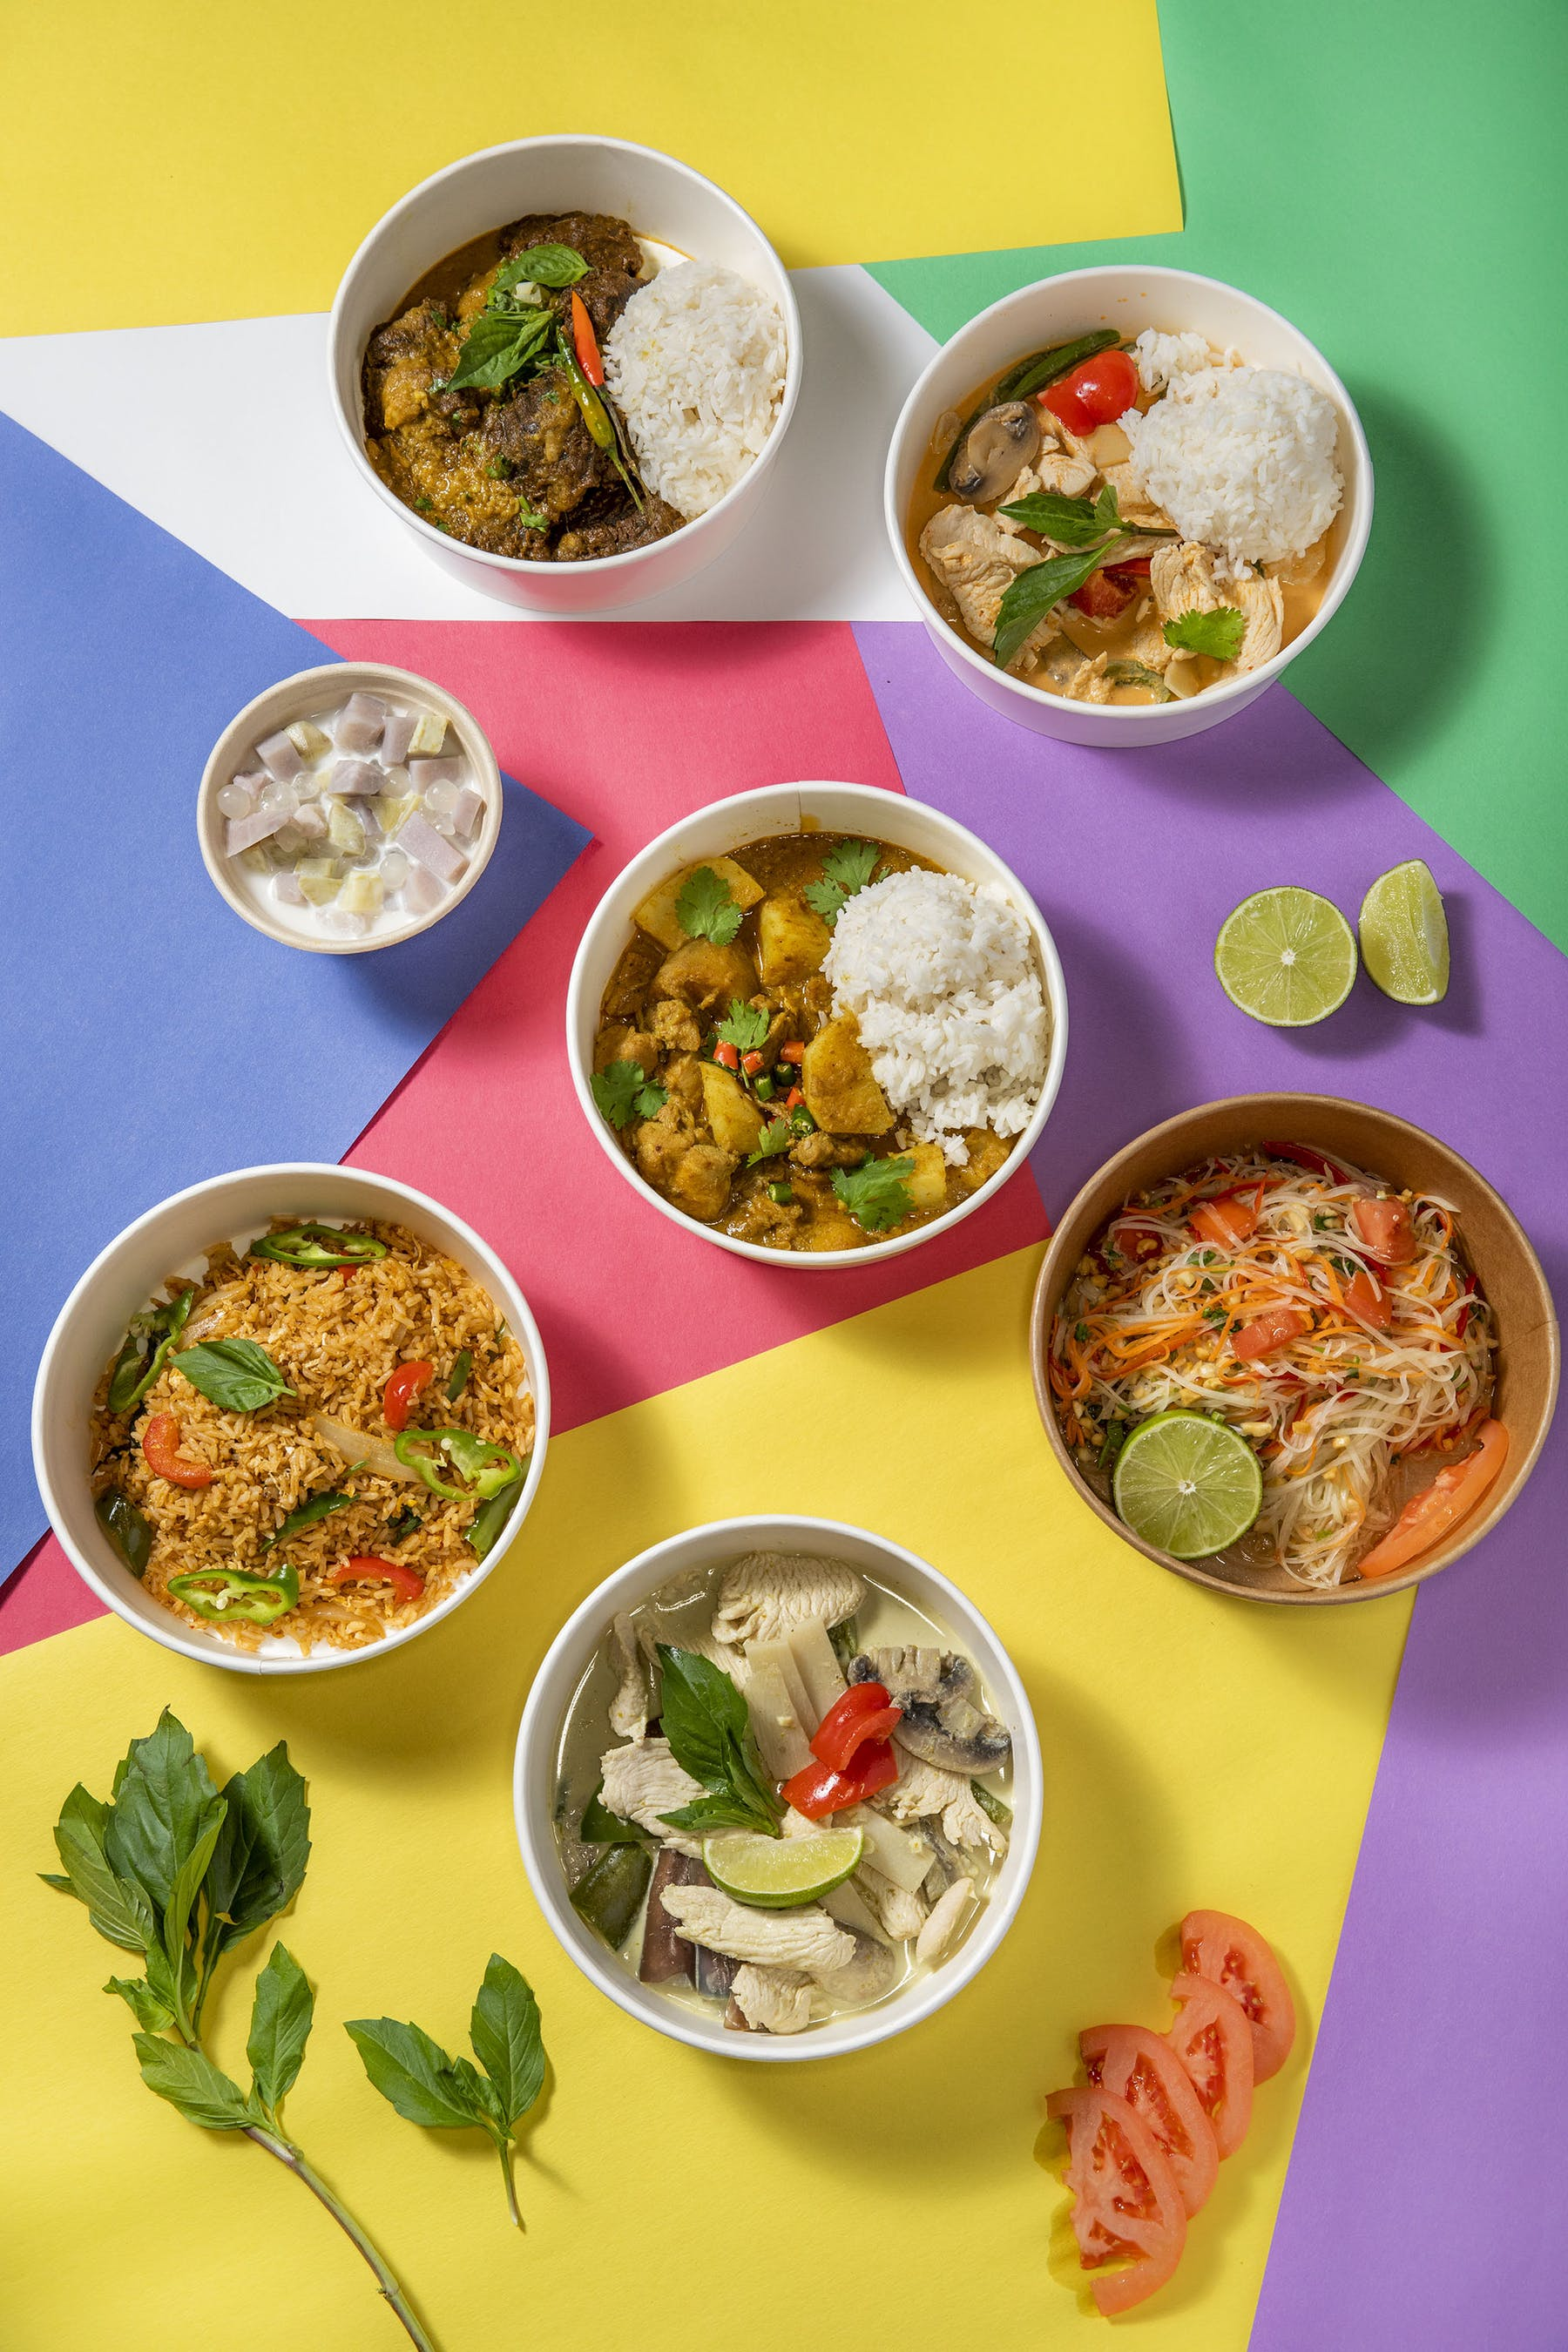 an overview of multiple bowls of food